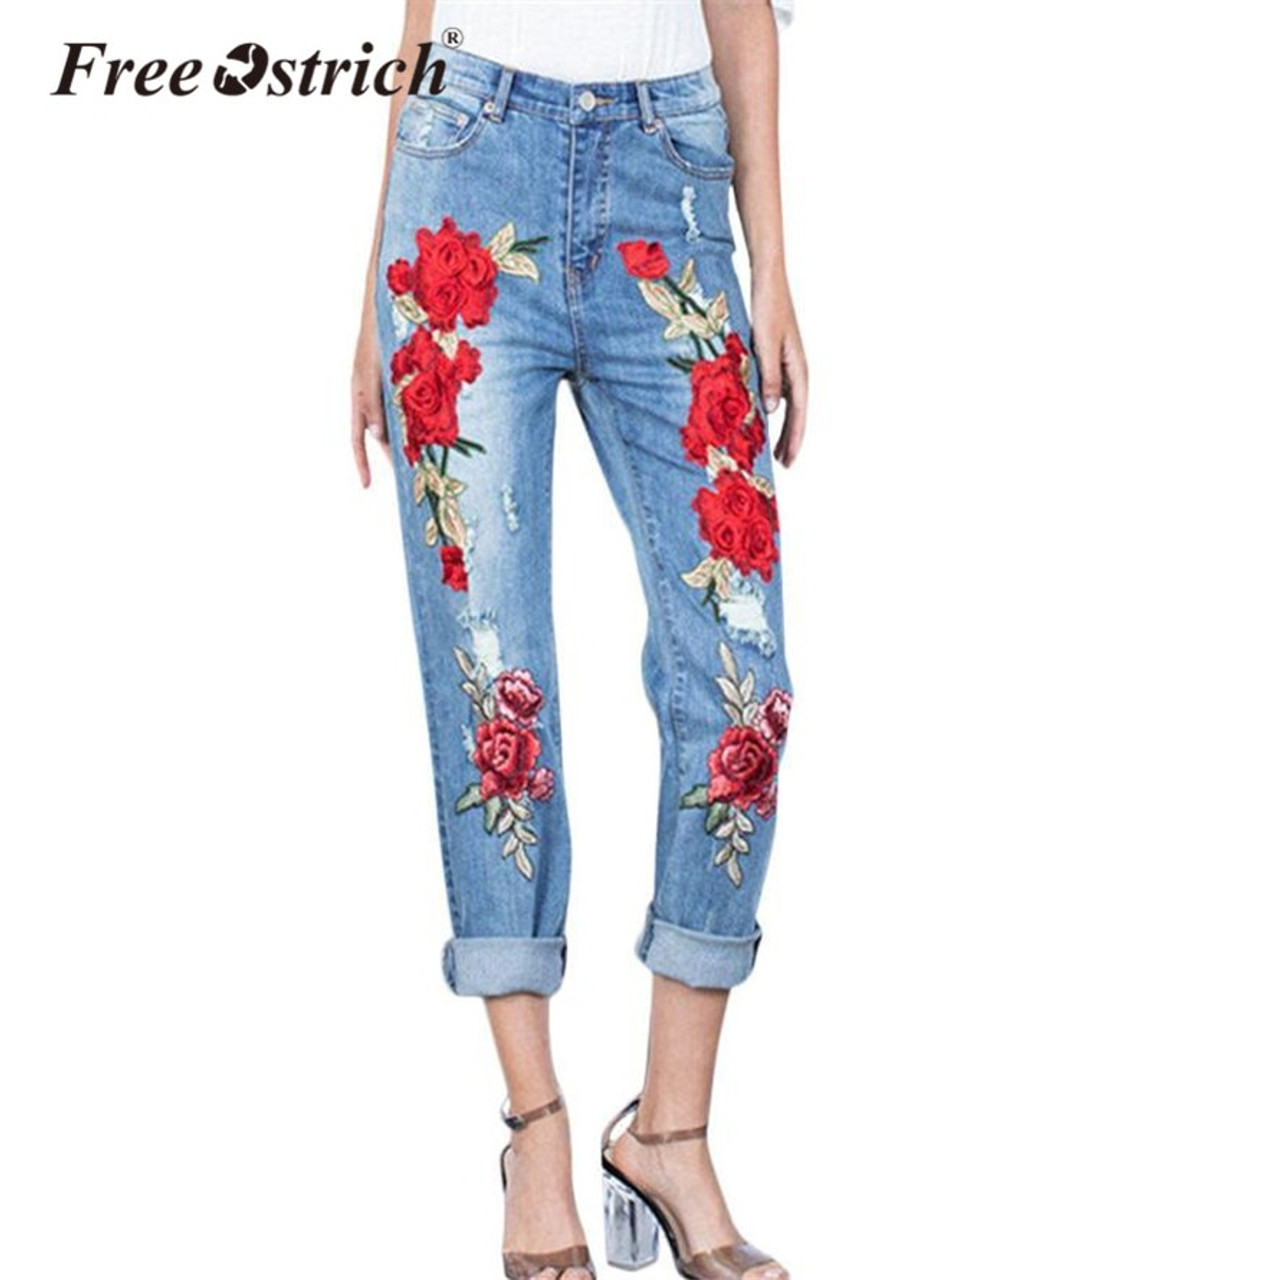 685ceb0ae31f3 Free Ostrich 2018 Plus Size Stretchy Ripped Jeans With Scuffs 3D Embroidery  Flowers Woman Denim Pants Trousers Jeans Sep27 - OnshopDeals.Com